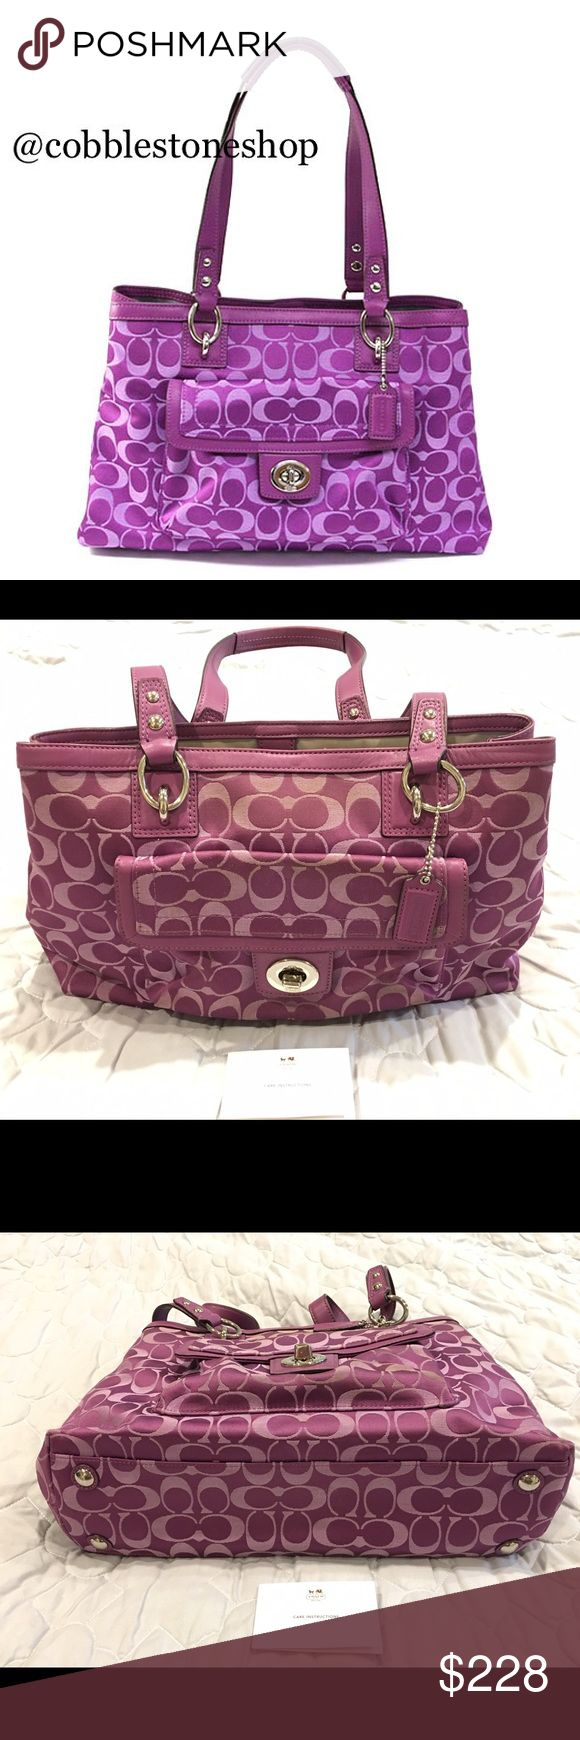 "Coach F19043 Plum Penelope signature carryall Coach F19043 Plum Penelope signature carryall length 14.5"" x Height 9.25"" x Depth 4.75""  Handle drop 8.75 Some slight wear/discoloration/small marks on inside see pictures  Make an offer  Coach Bags"